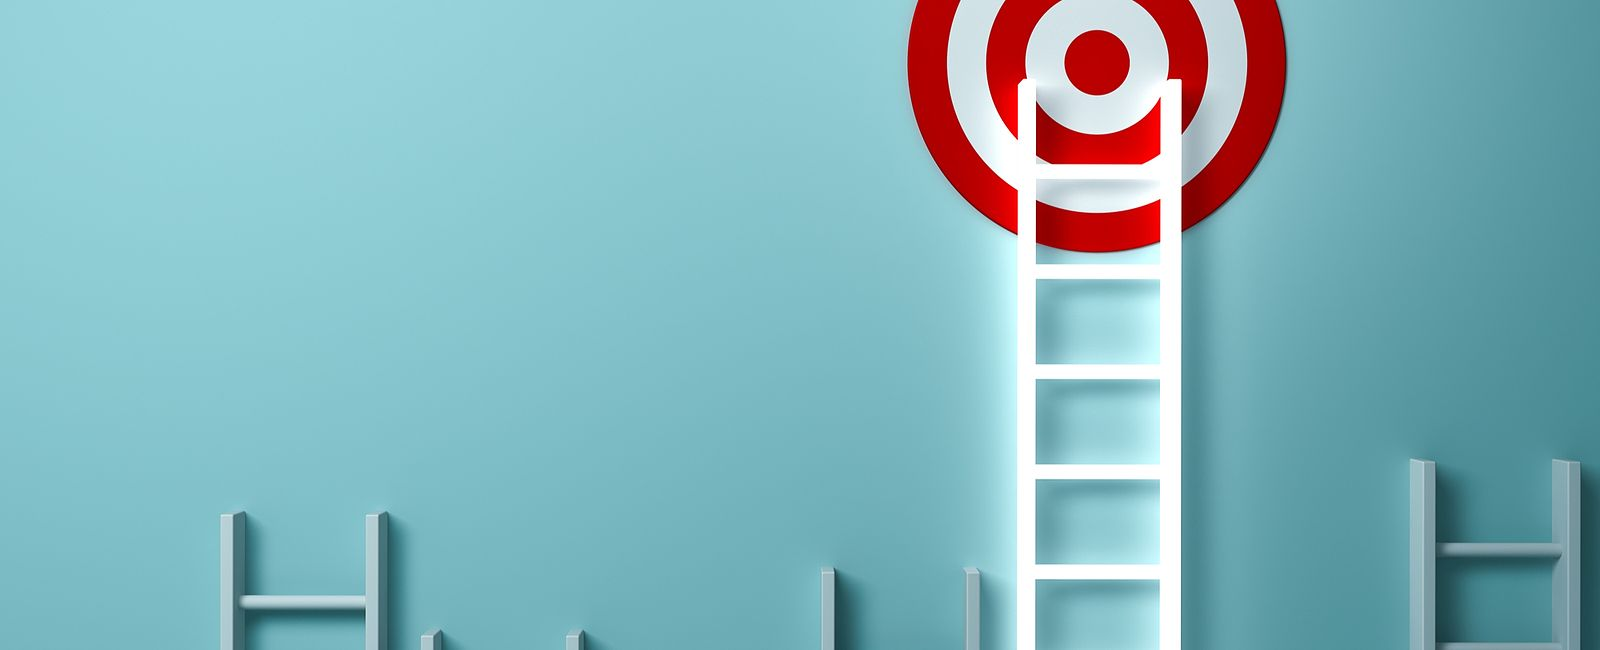 ladders climbing towards a target